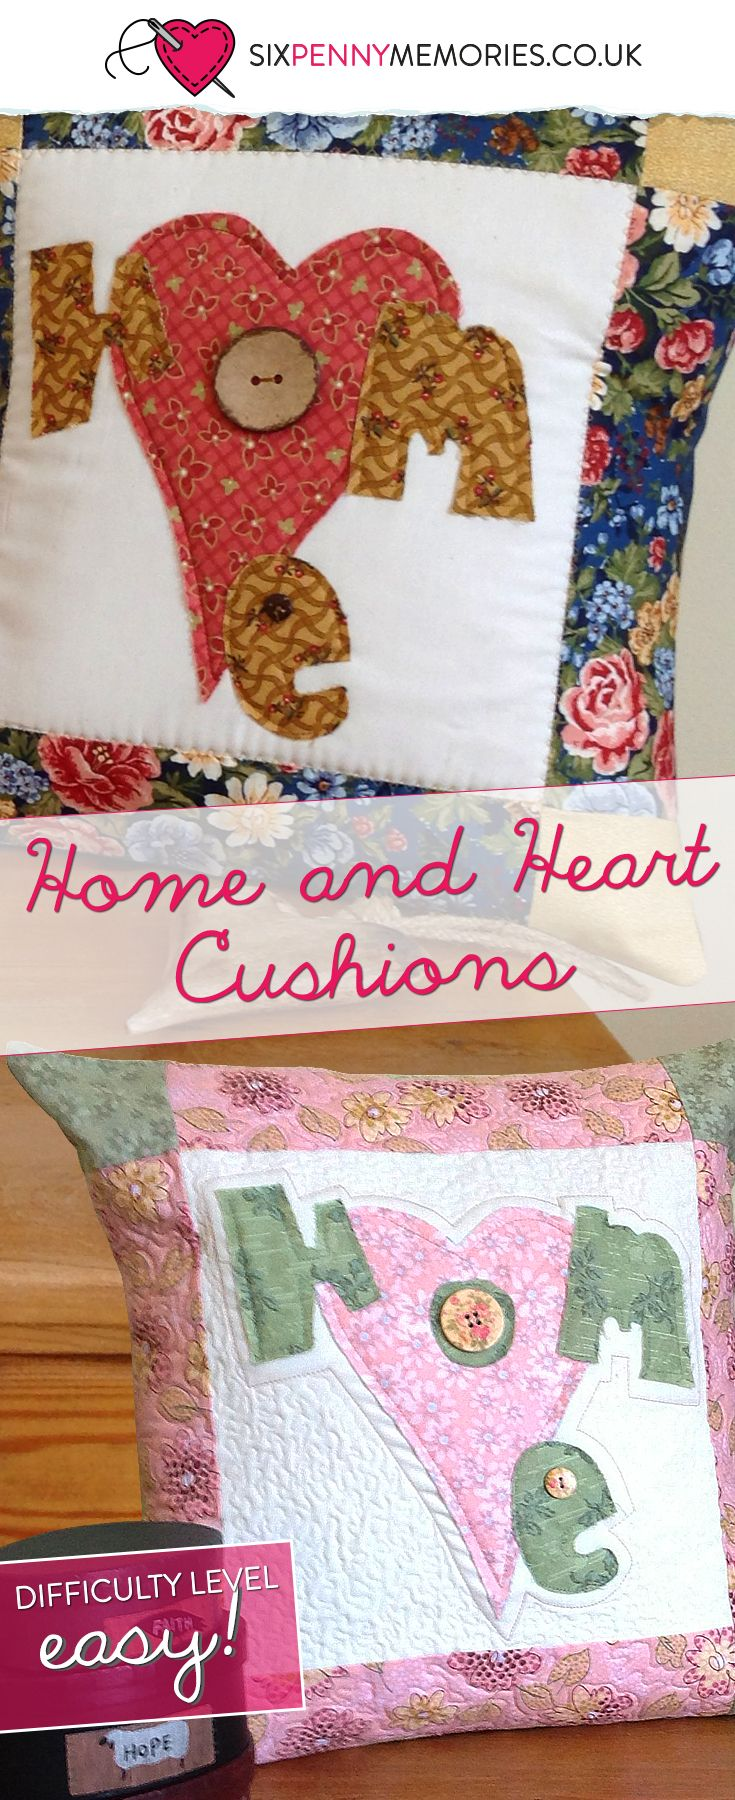 Home and Heart cushion